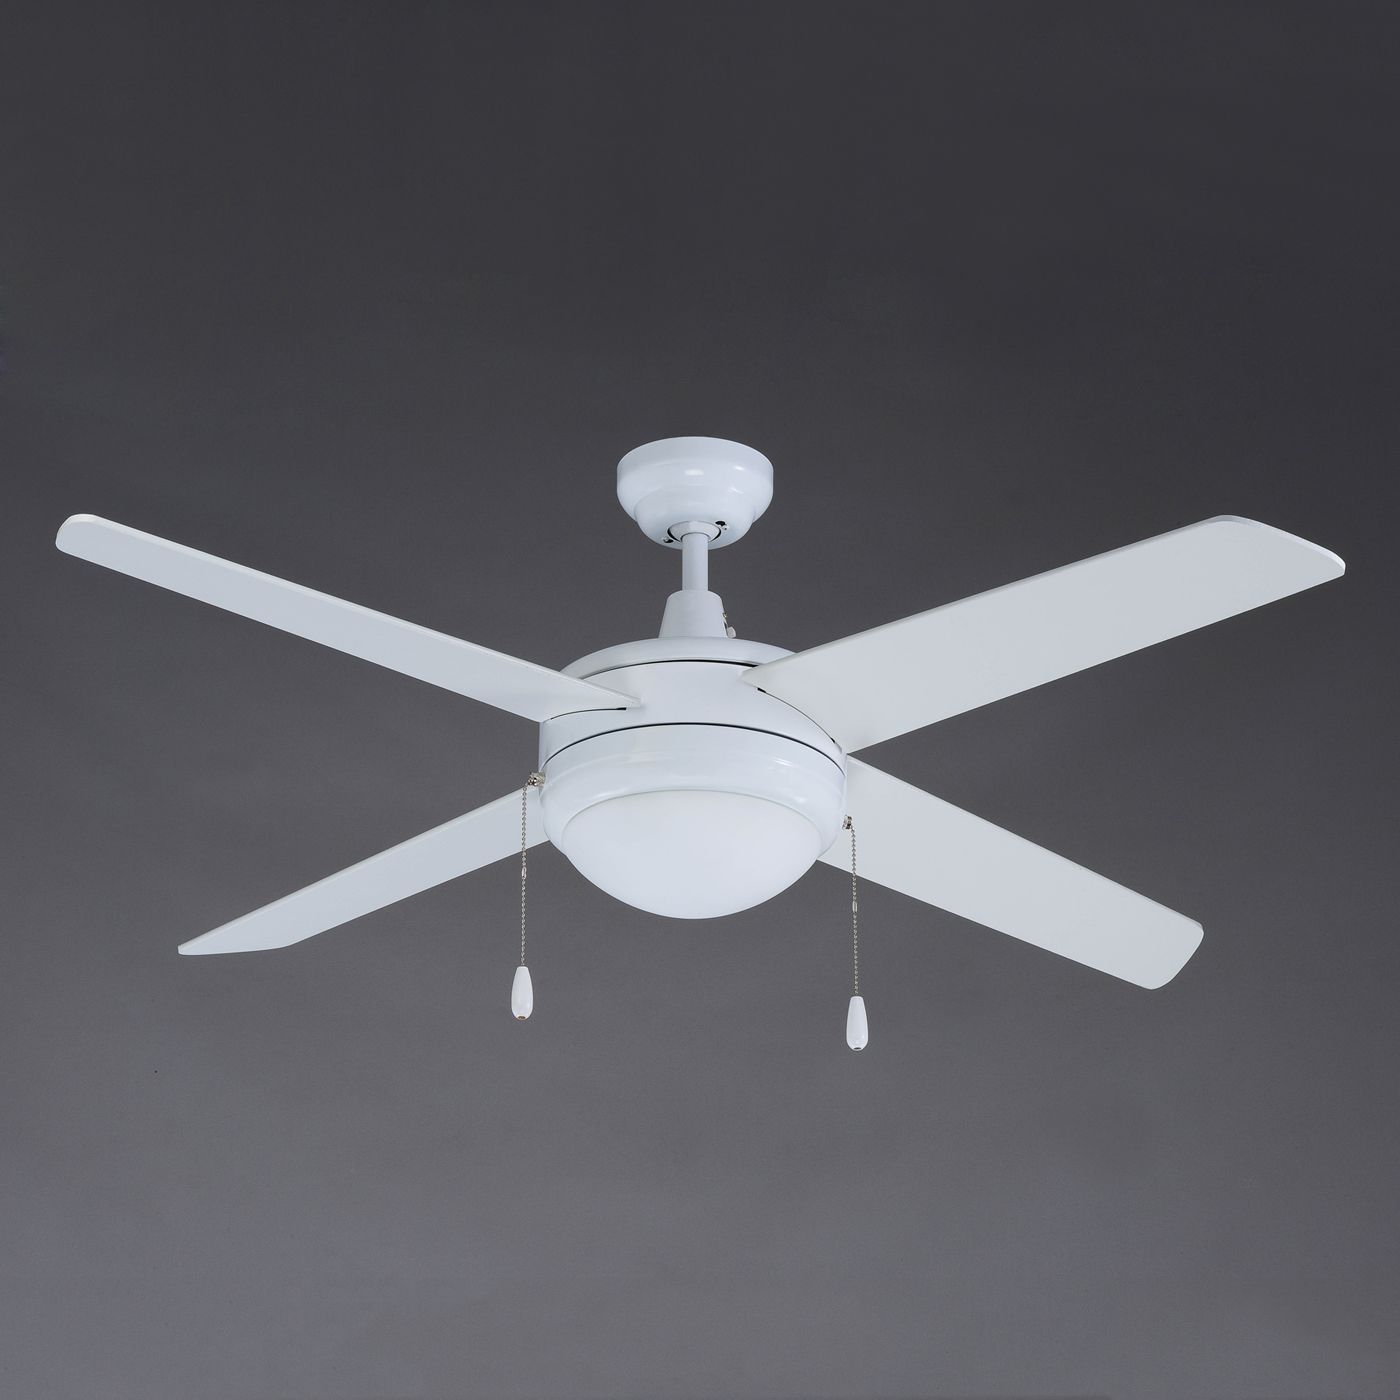 Royal pacific 1004 europa ceiling fan at atg stores family room royal pacific 1004 europa ceiling fan at atg stores aloadofball Choice Image